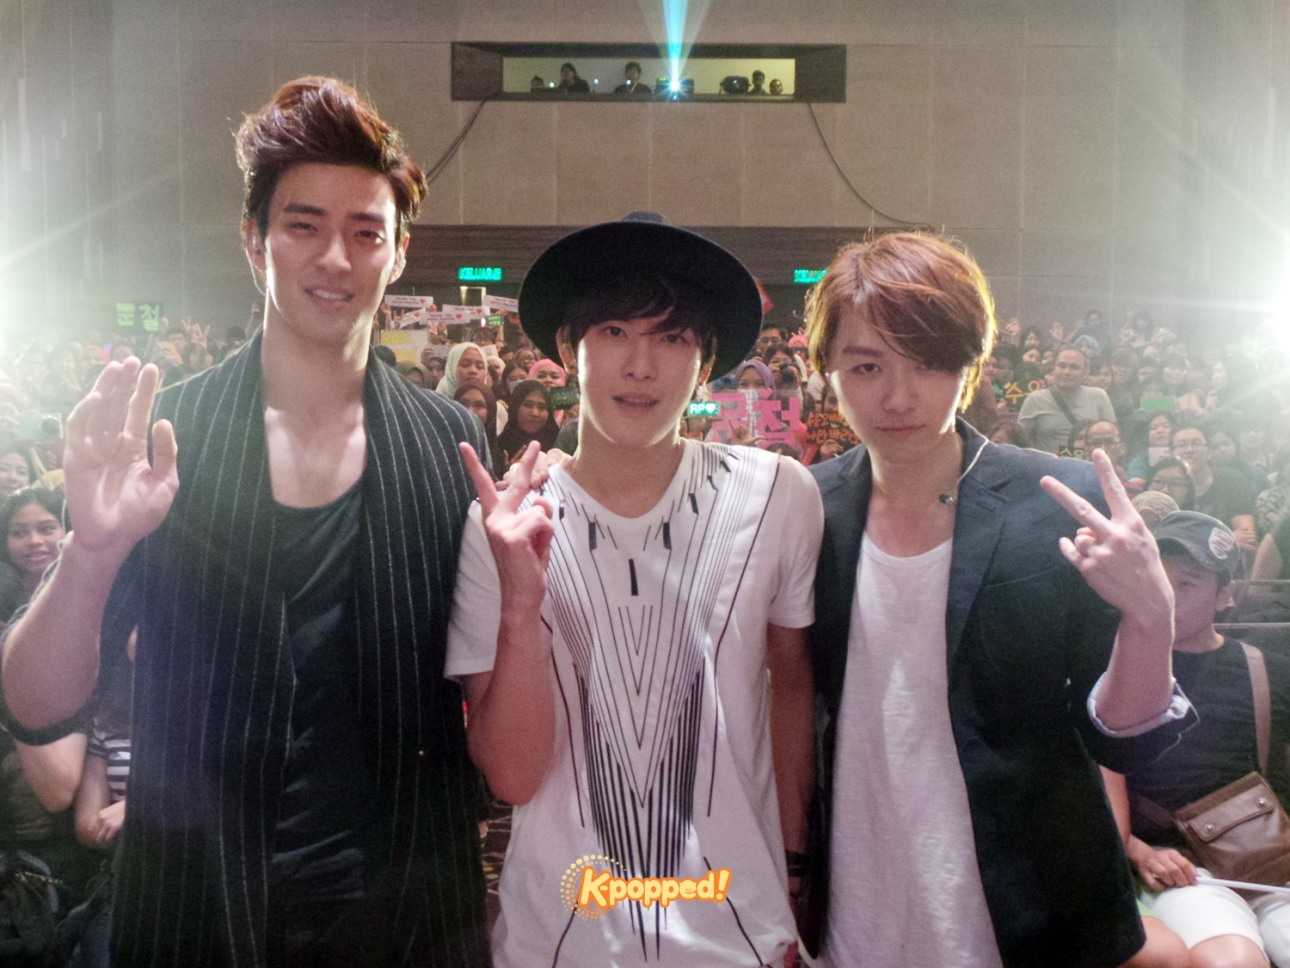 [Event Coverage] Royal Pirates successfully wrap up their Malaysia tour